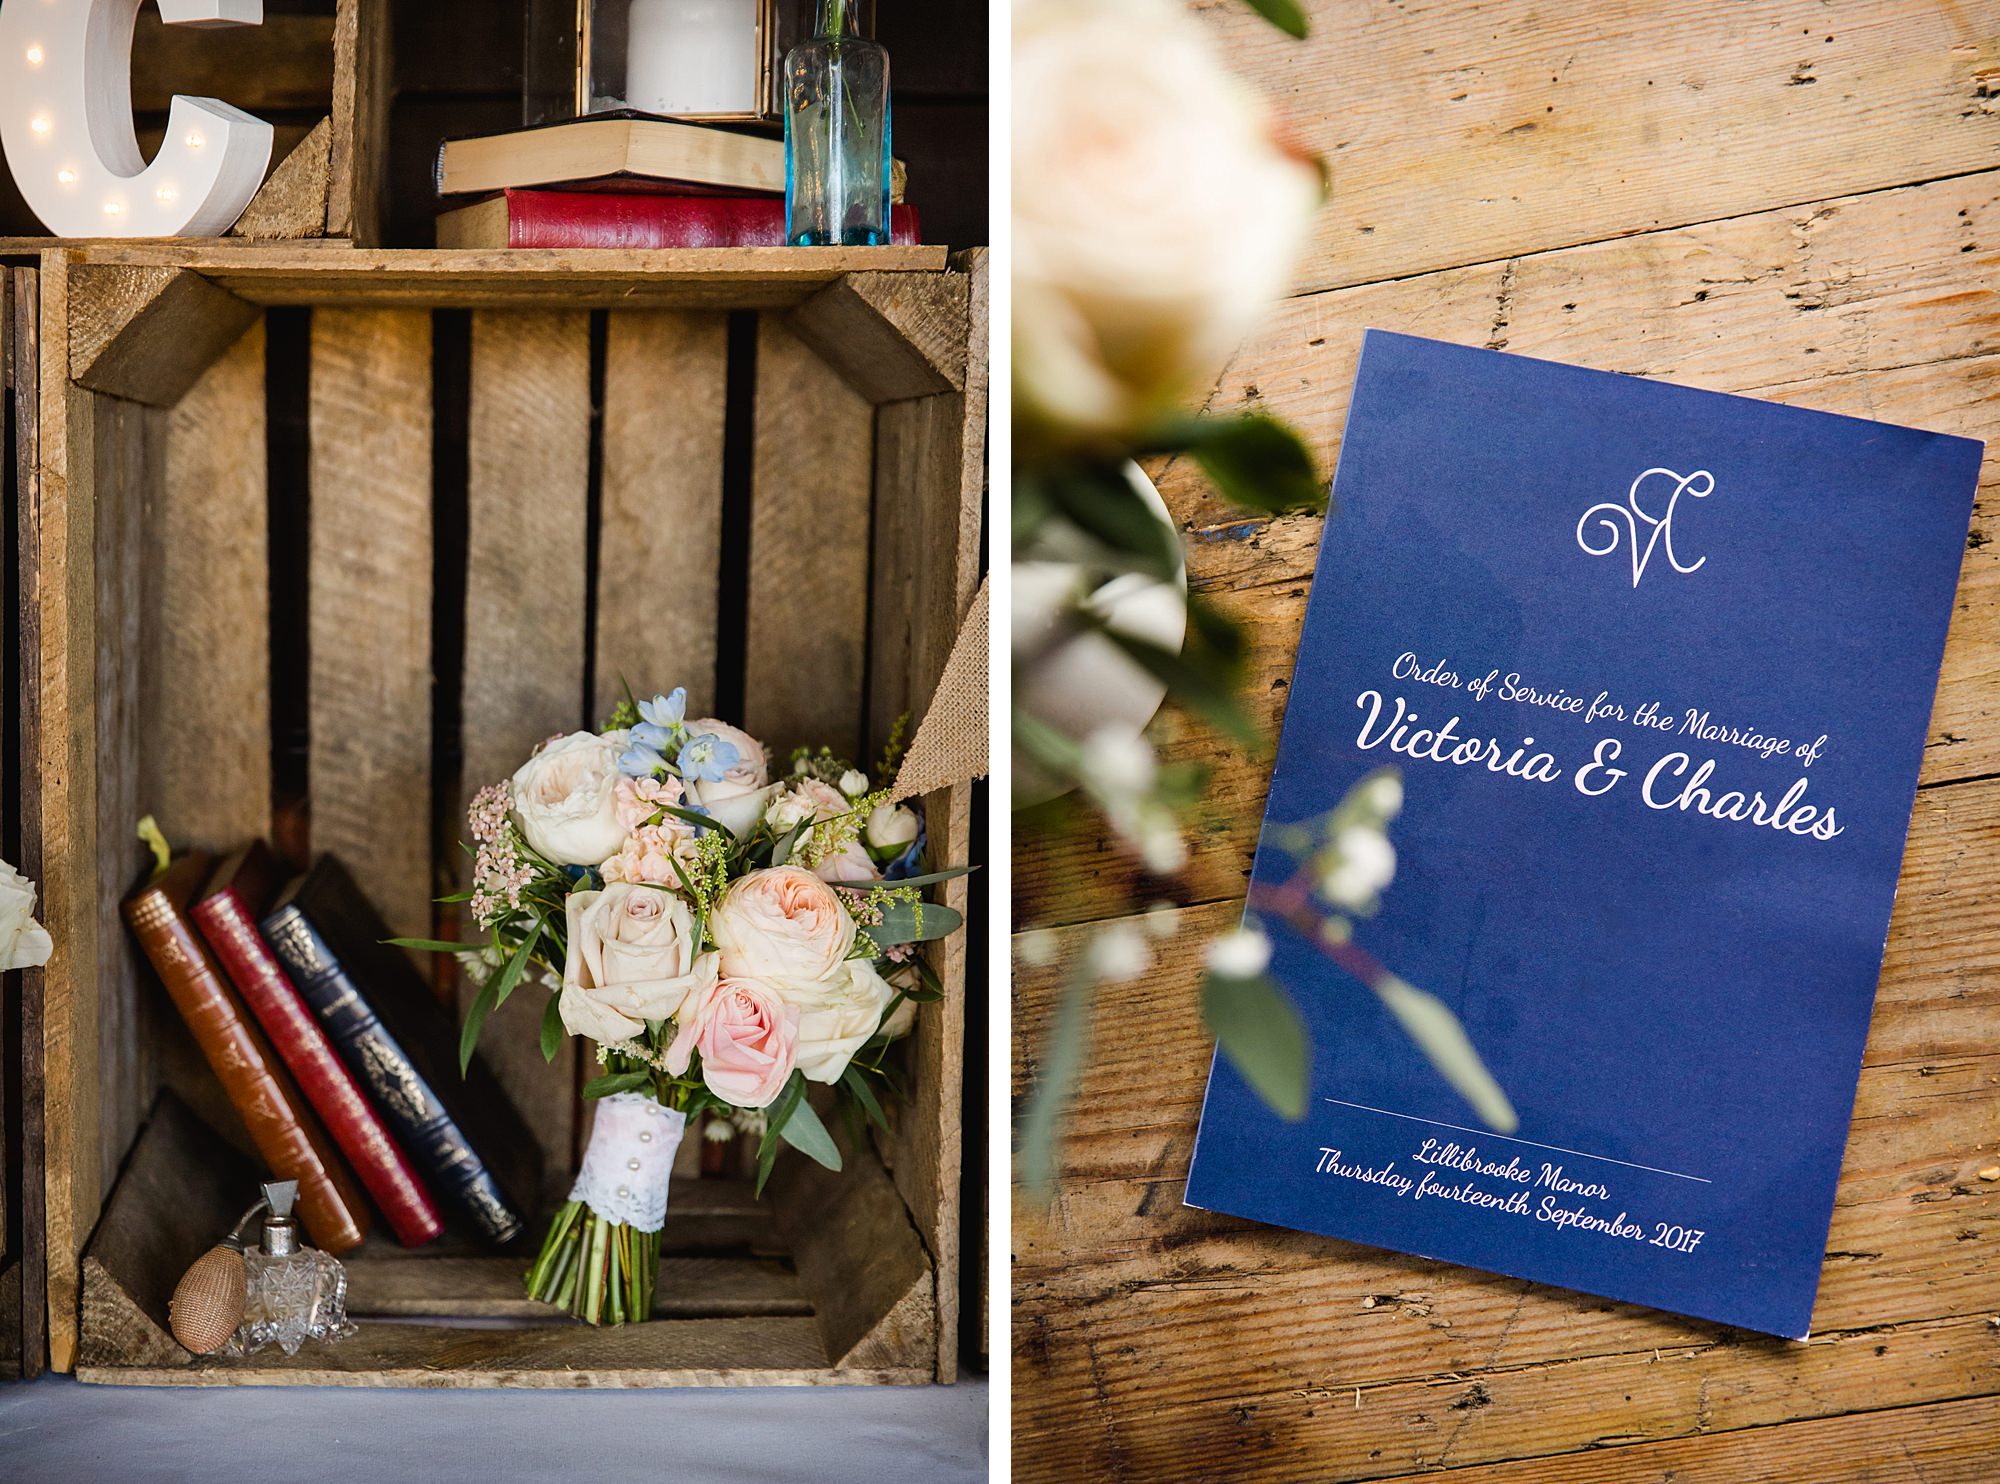 Lillibrooke Manor wedding bride's bouquet and order of service